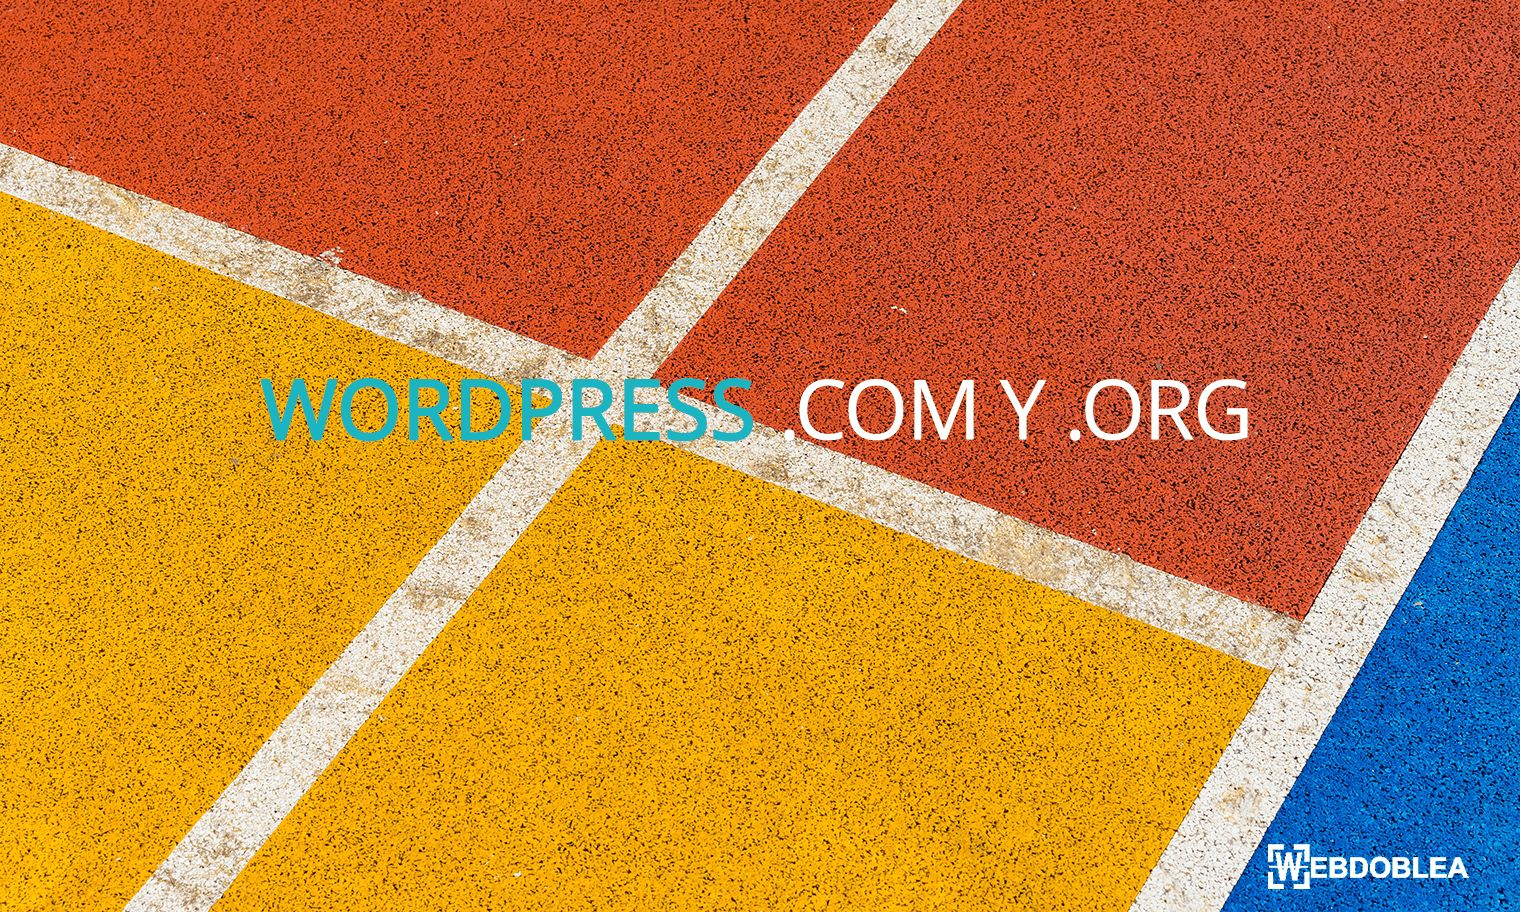 wordpress.com_org